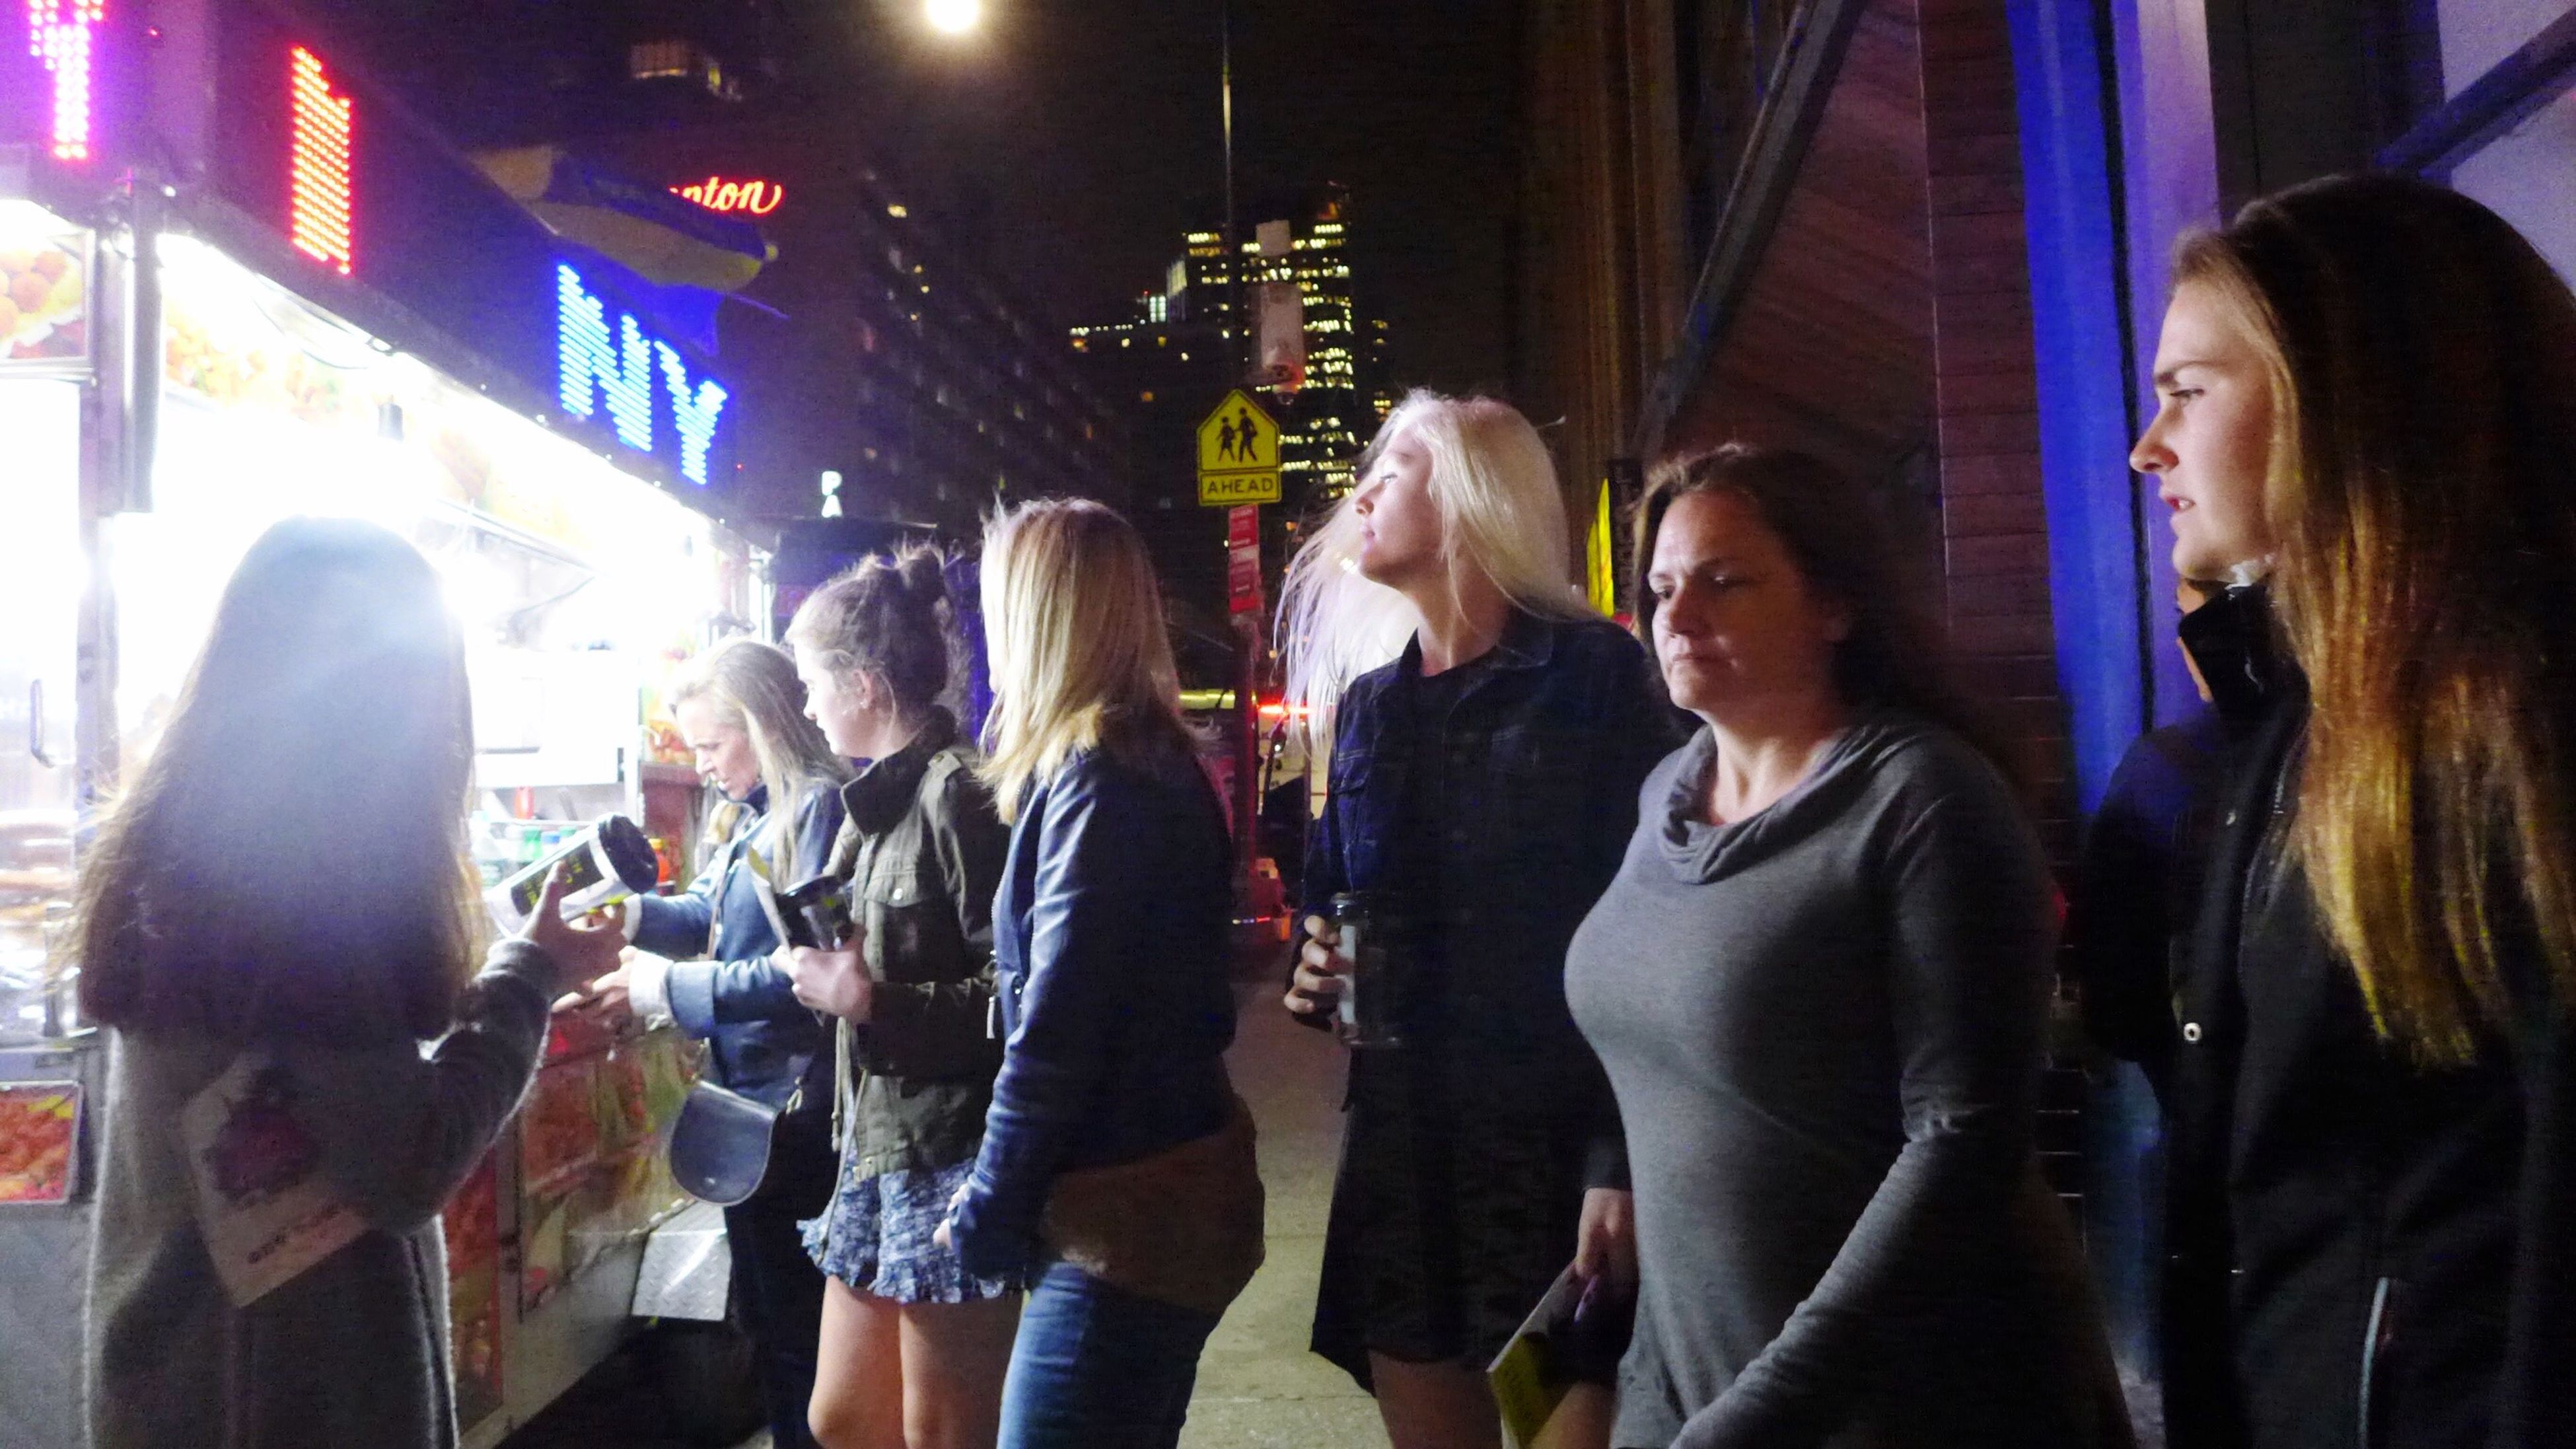 night, illuminated, large group of people, enjoyment, crowd, real people, young women, standing, togetherness, men, young adult, women, happiness, indoors, people, adult, adults only, city